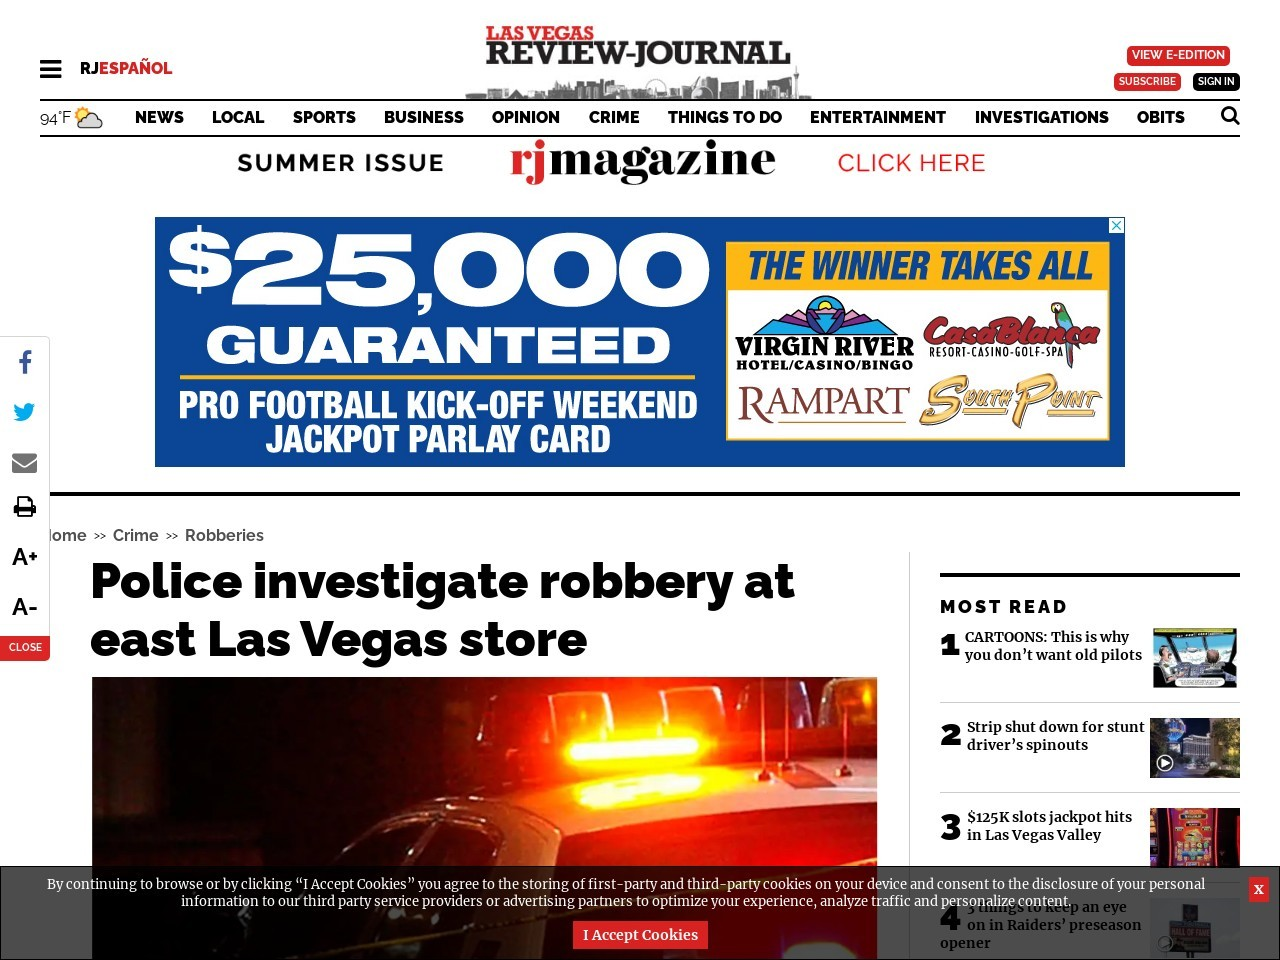 Police investigate robbery at east Las Vegas store